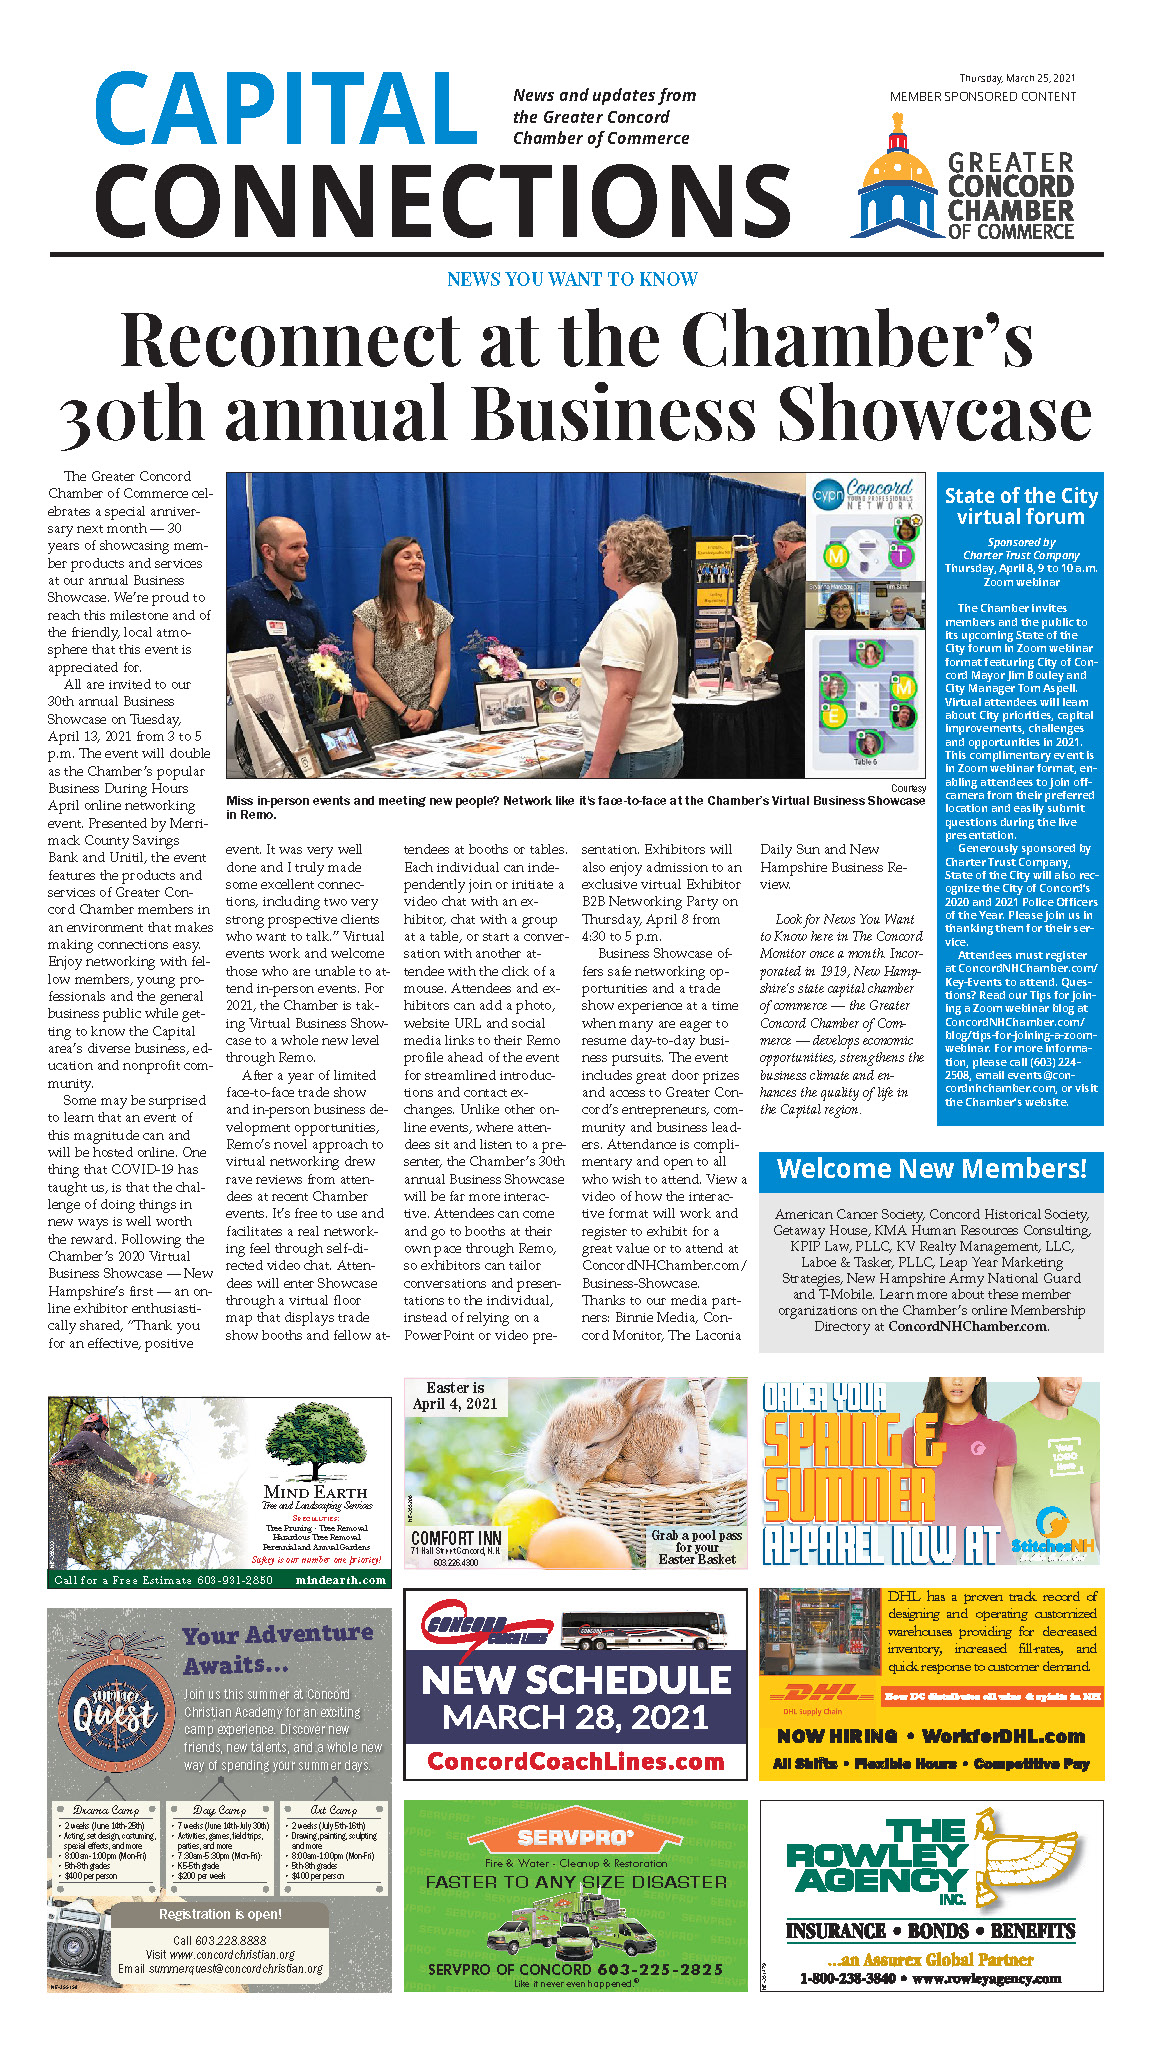 Link to a PDF of the Chamber's Reconnect at the Chamber's 30th annual Business Showcase article in the March 25, 2021 edition of the Concord Monitor